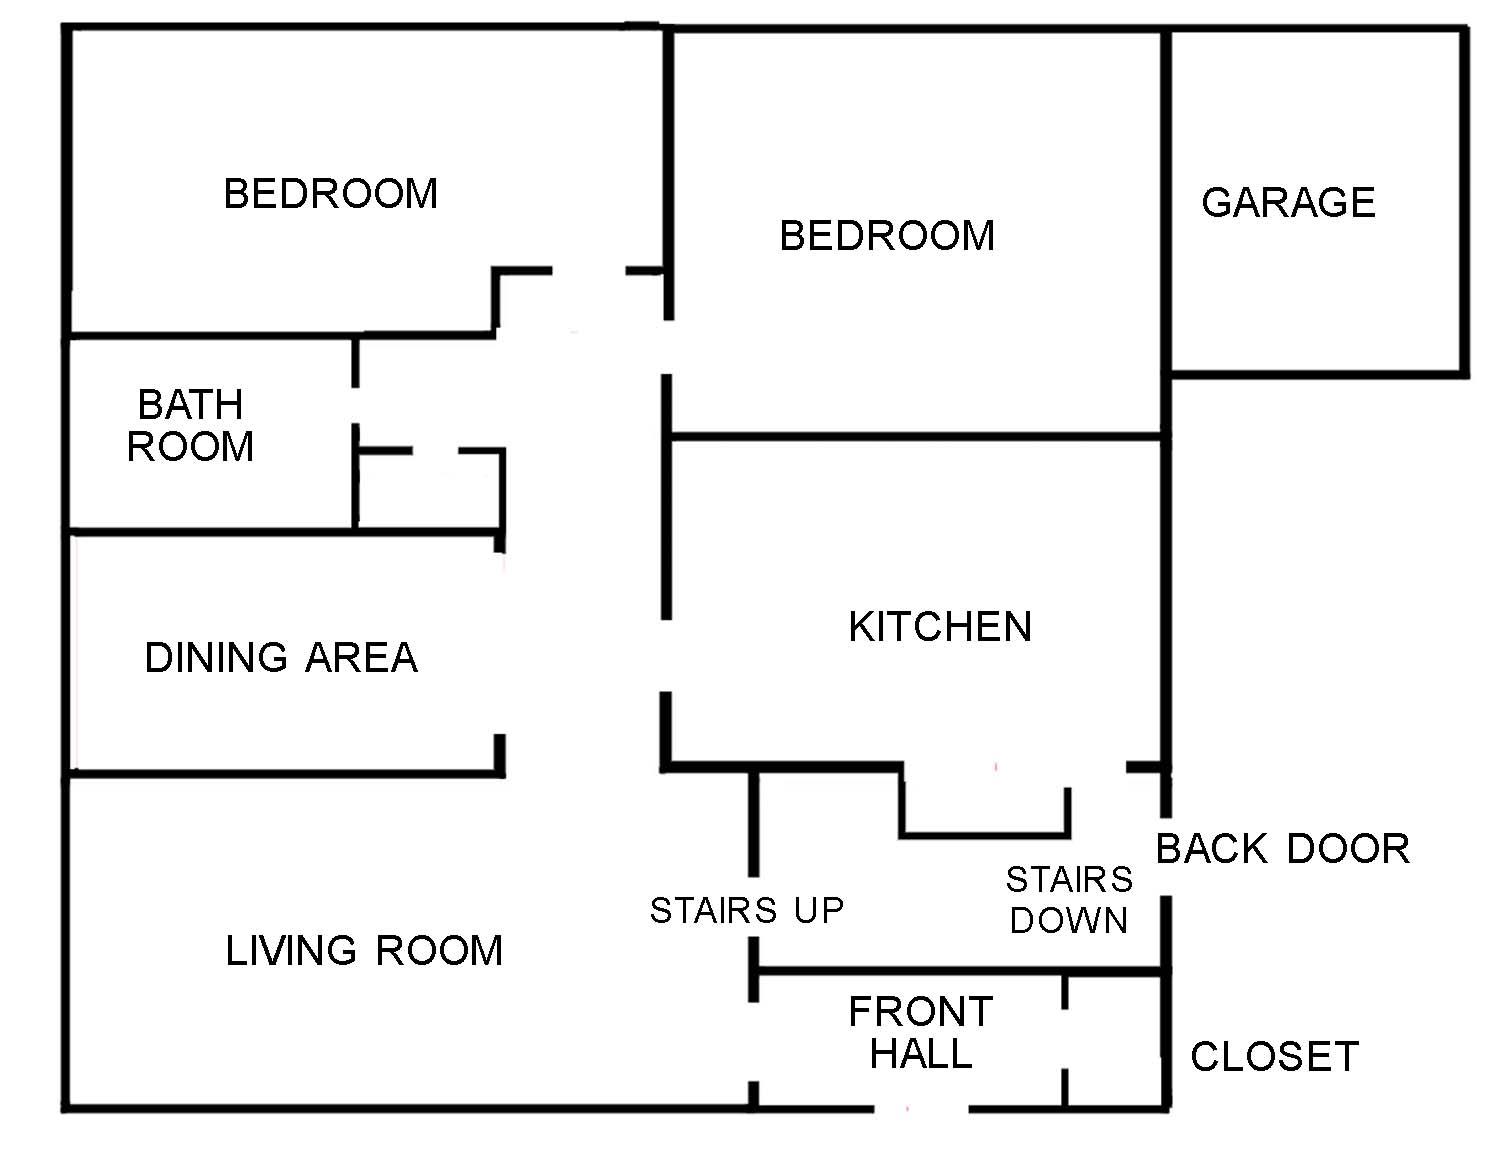 november 2014 class 5c 2014 15 where can i find floor plans of my house can home plans